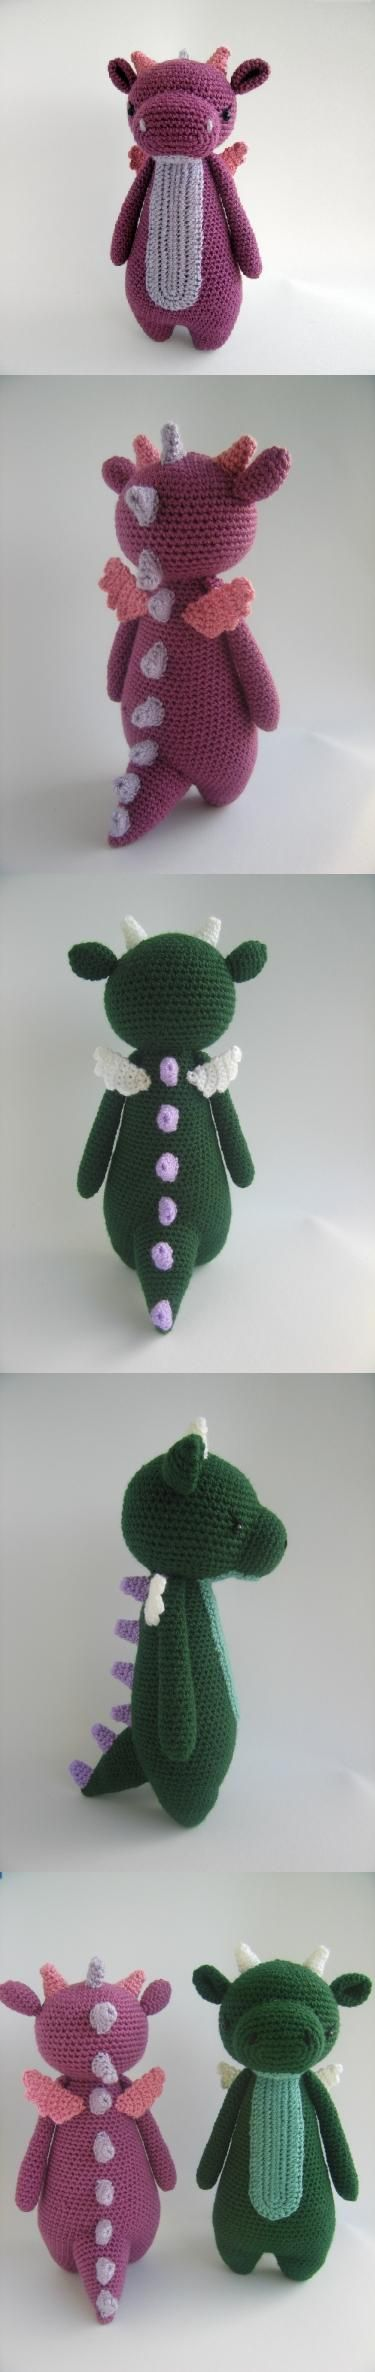 Tall Dragon With Spikes Amigurumi Pattern by Little Bear Crochet